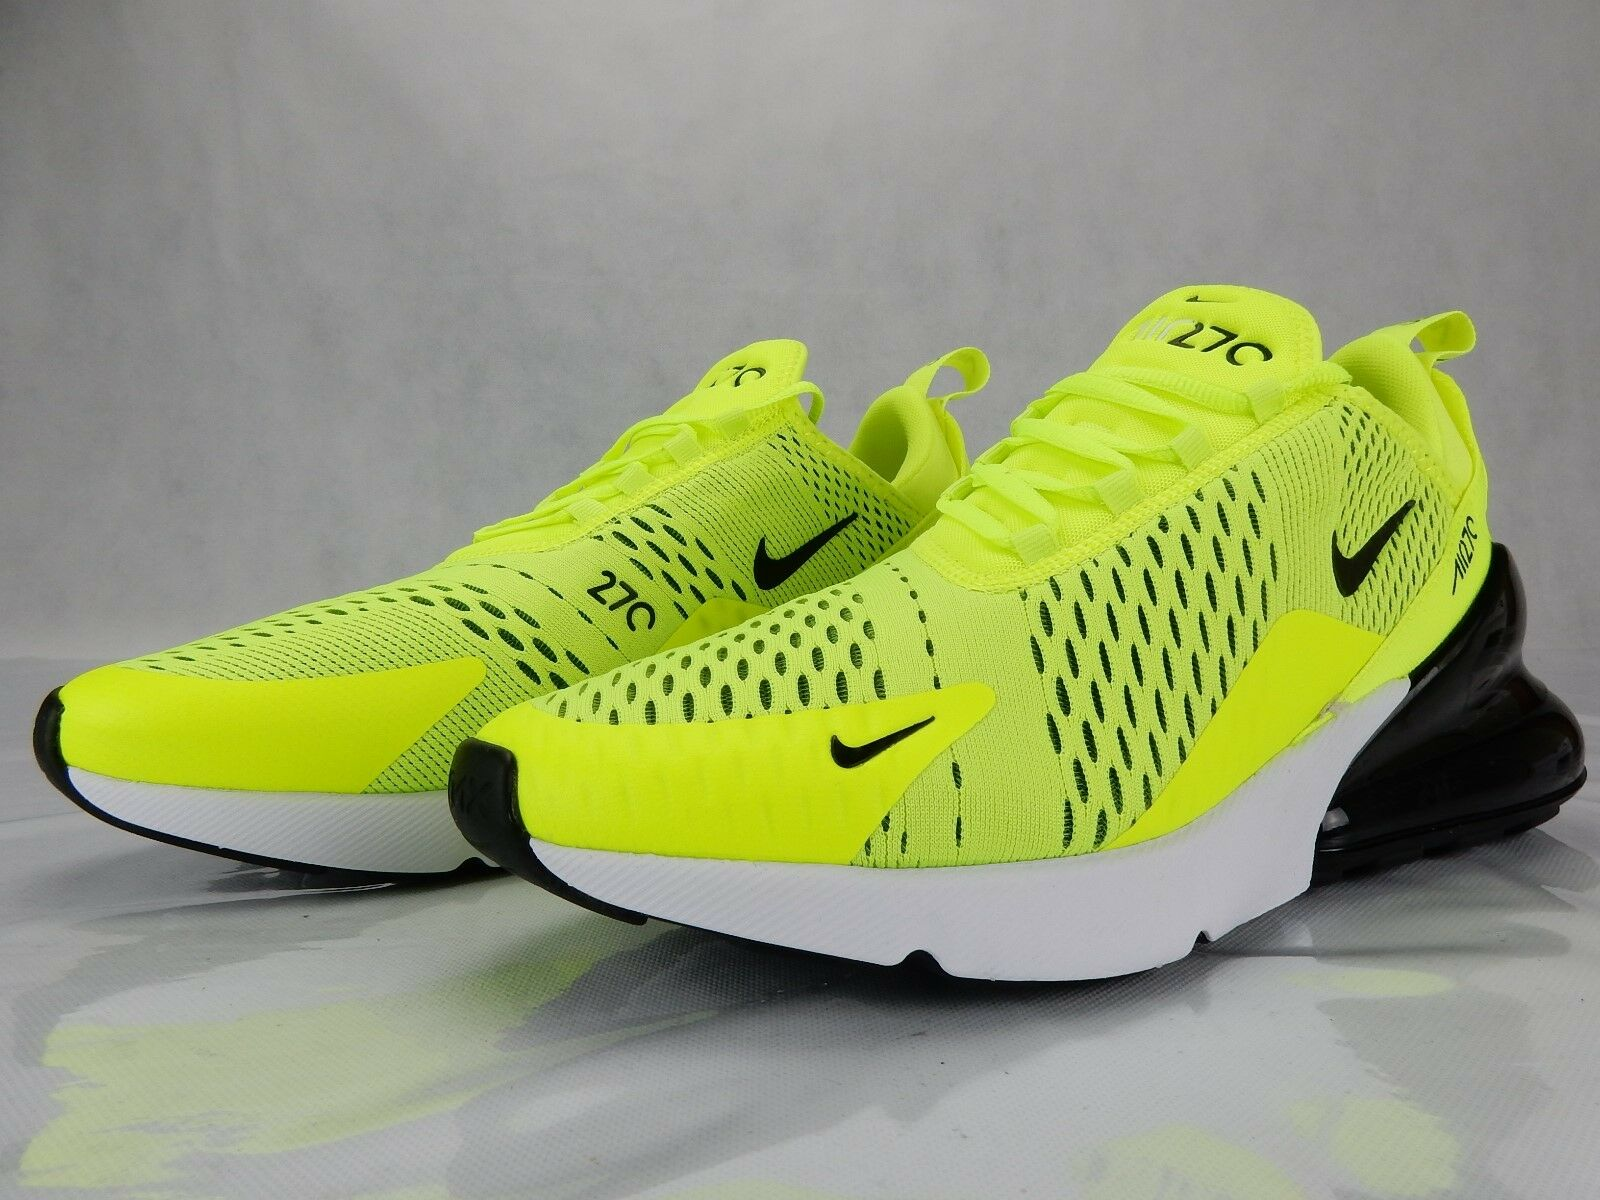 Nike Air Max 270 Volt Black White AH8050 701 New Mens shoes S Size 9.5 Sneakers